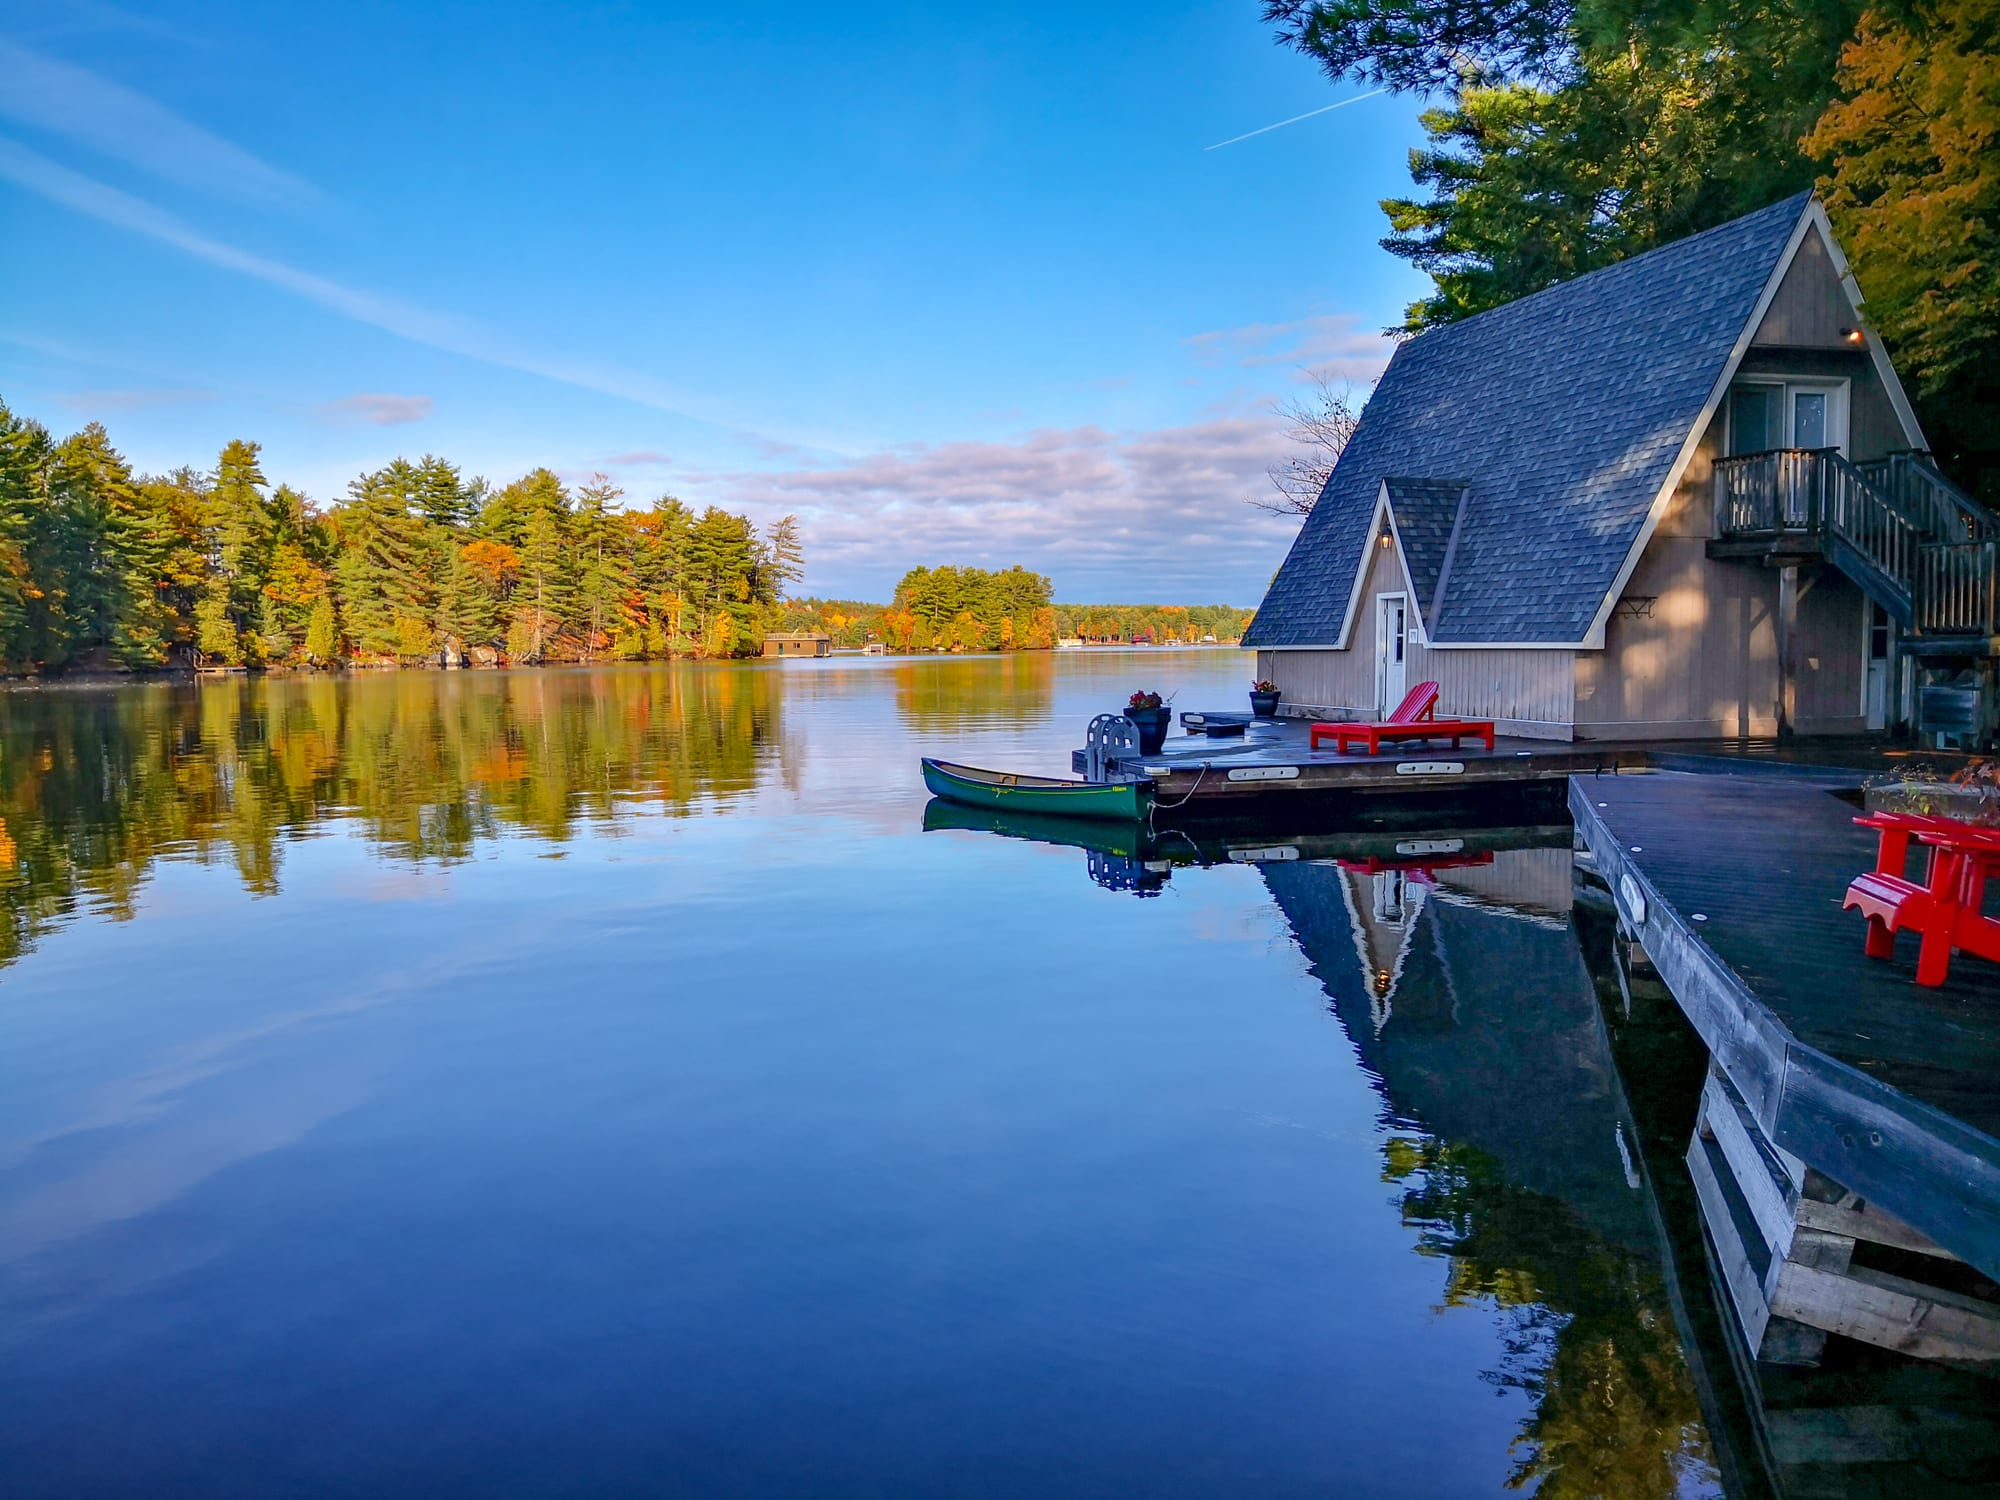 A boat house of Taylor Island in Autumn at Gravenhurst, Ontario, Canada.